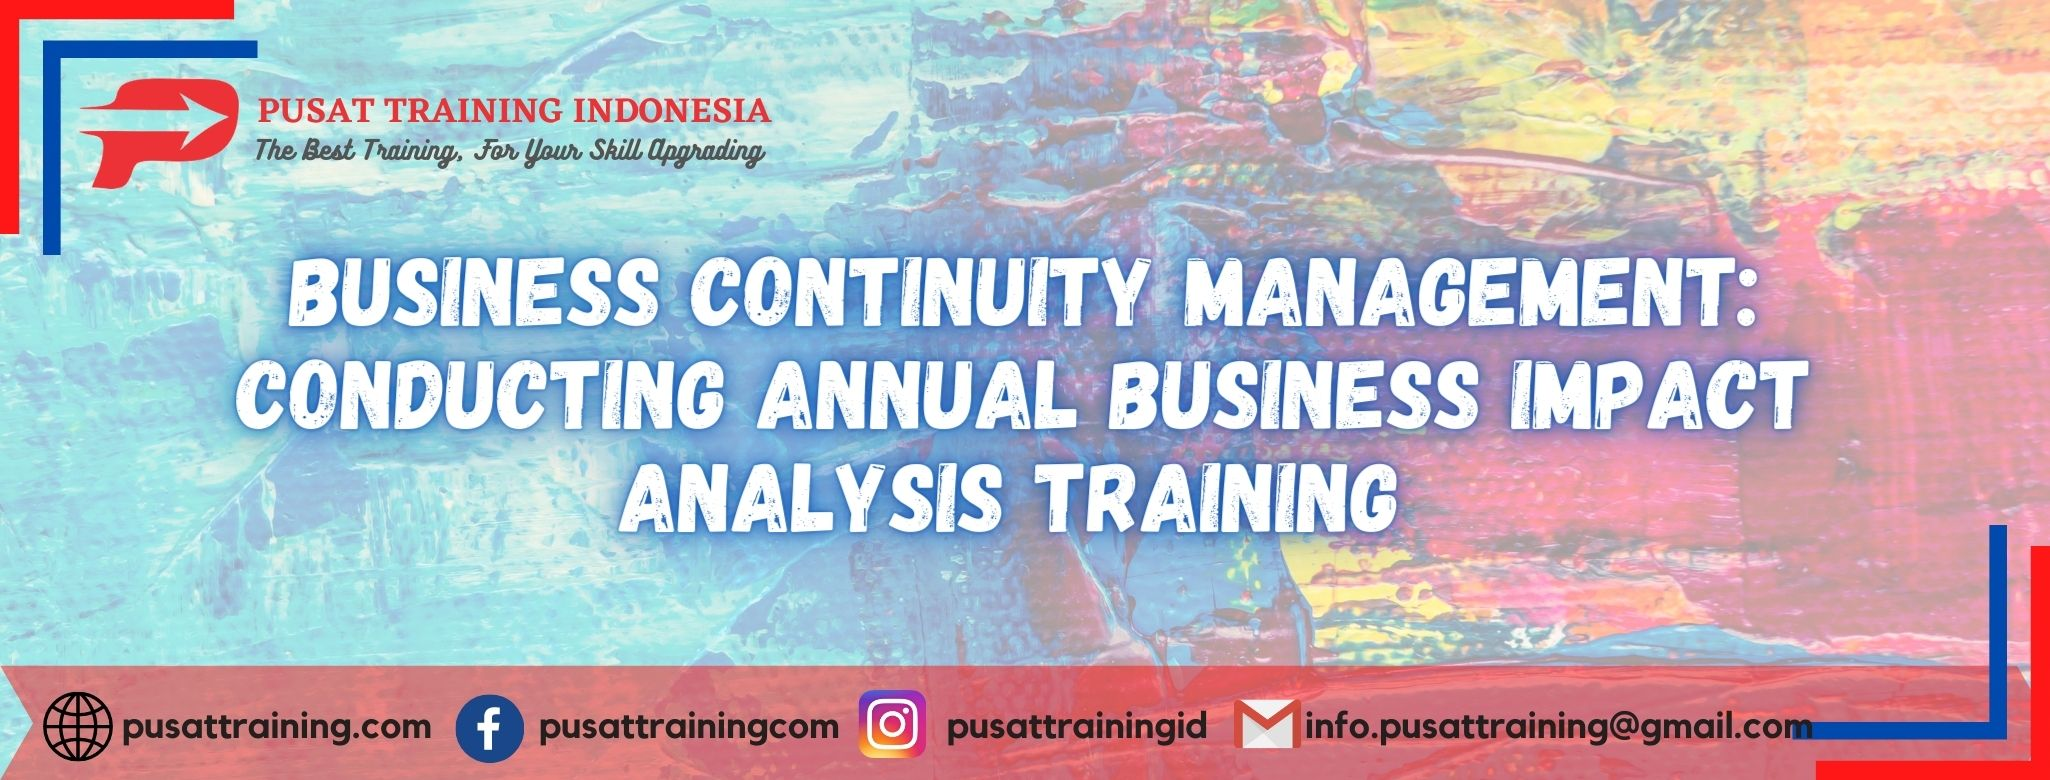 Business-Continuity-Management_-Conducting-Annual-Business-Impact-Analysis-Training